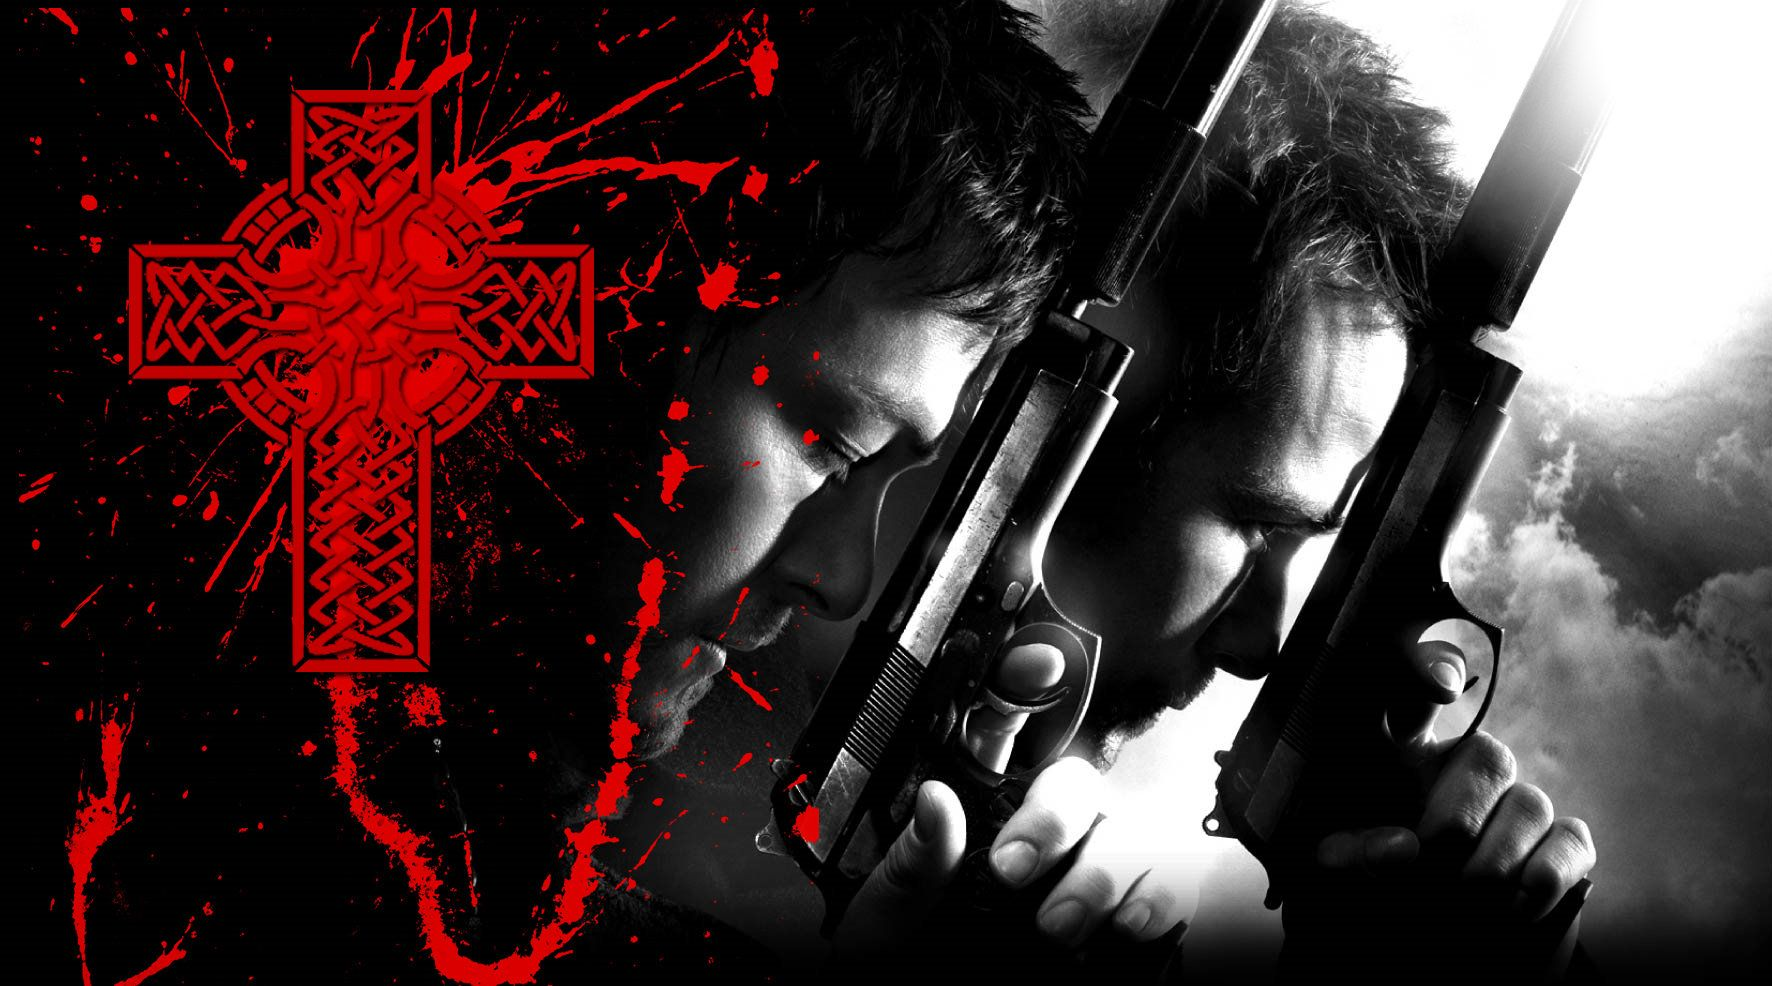 1772x986 Boondock Saints wallpaper by jimEYE on DeviantArt